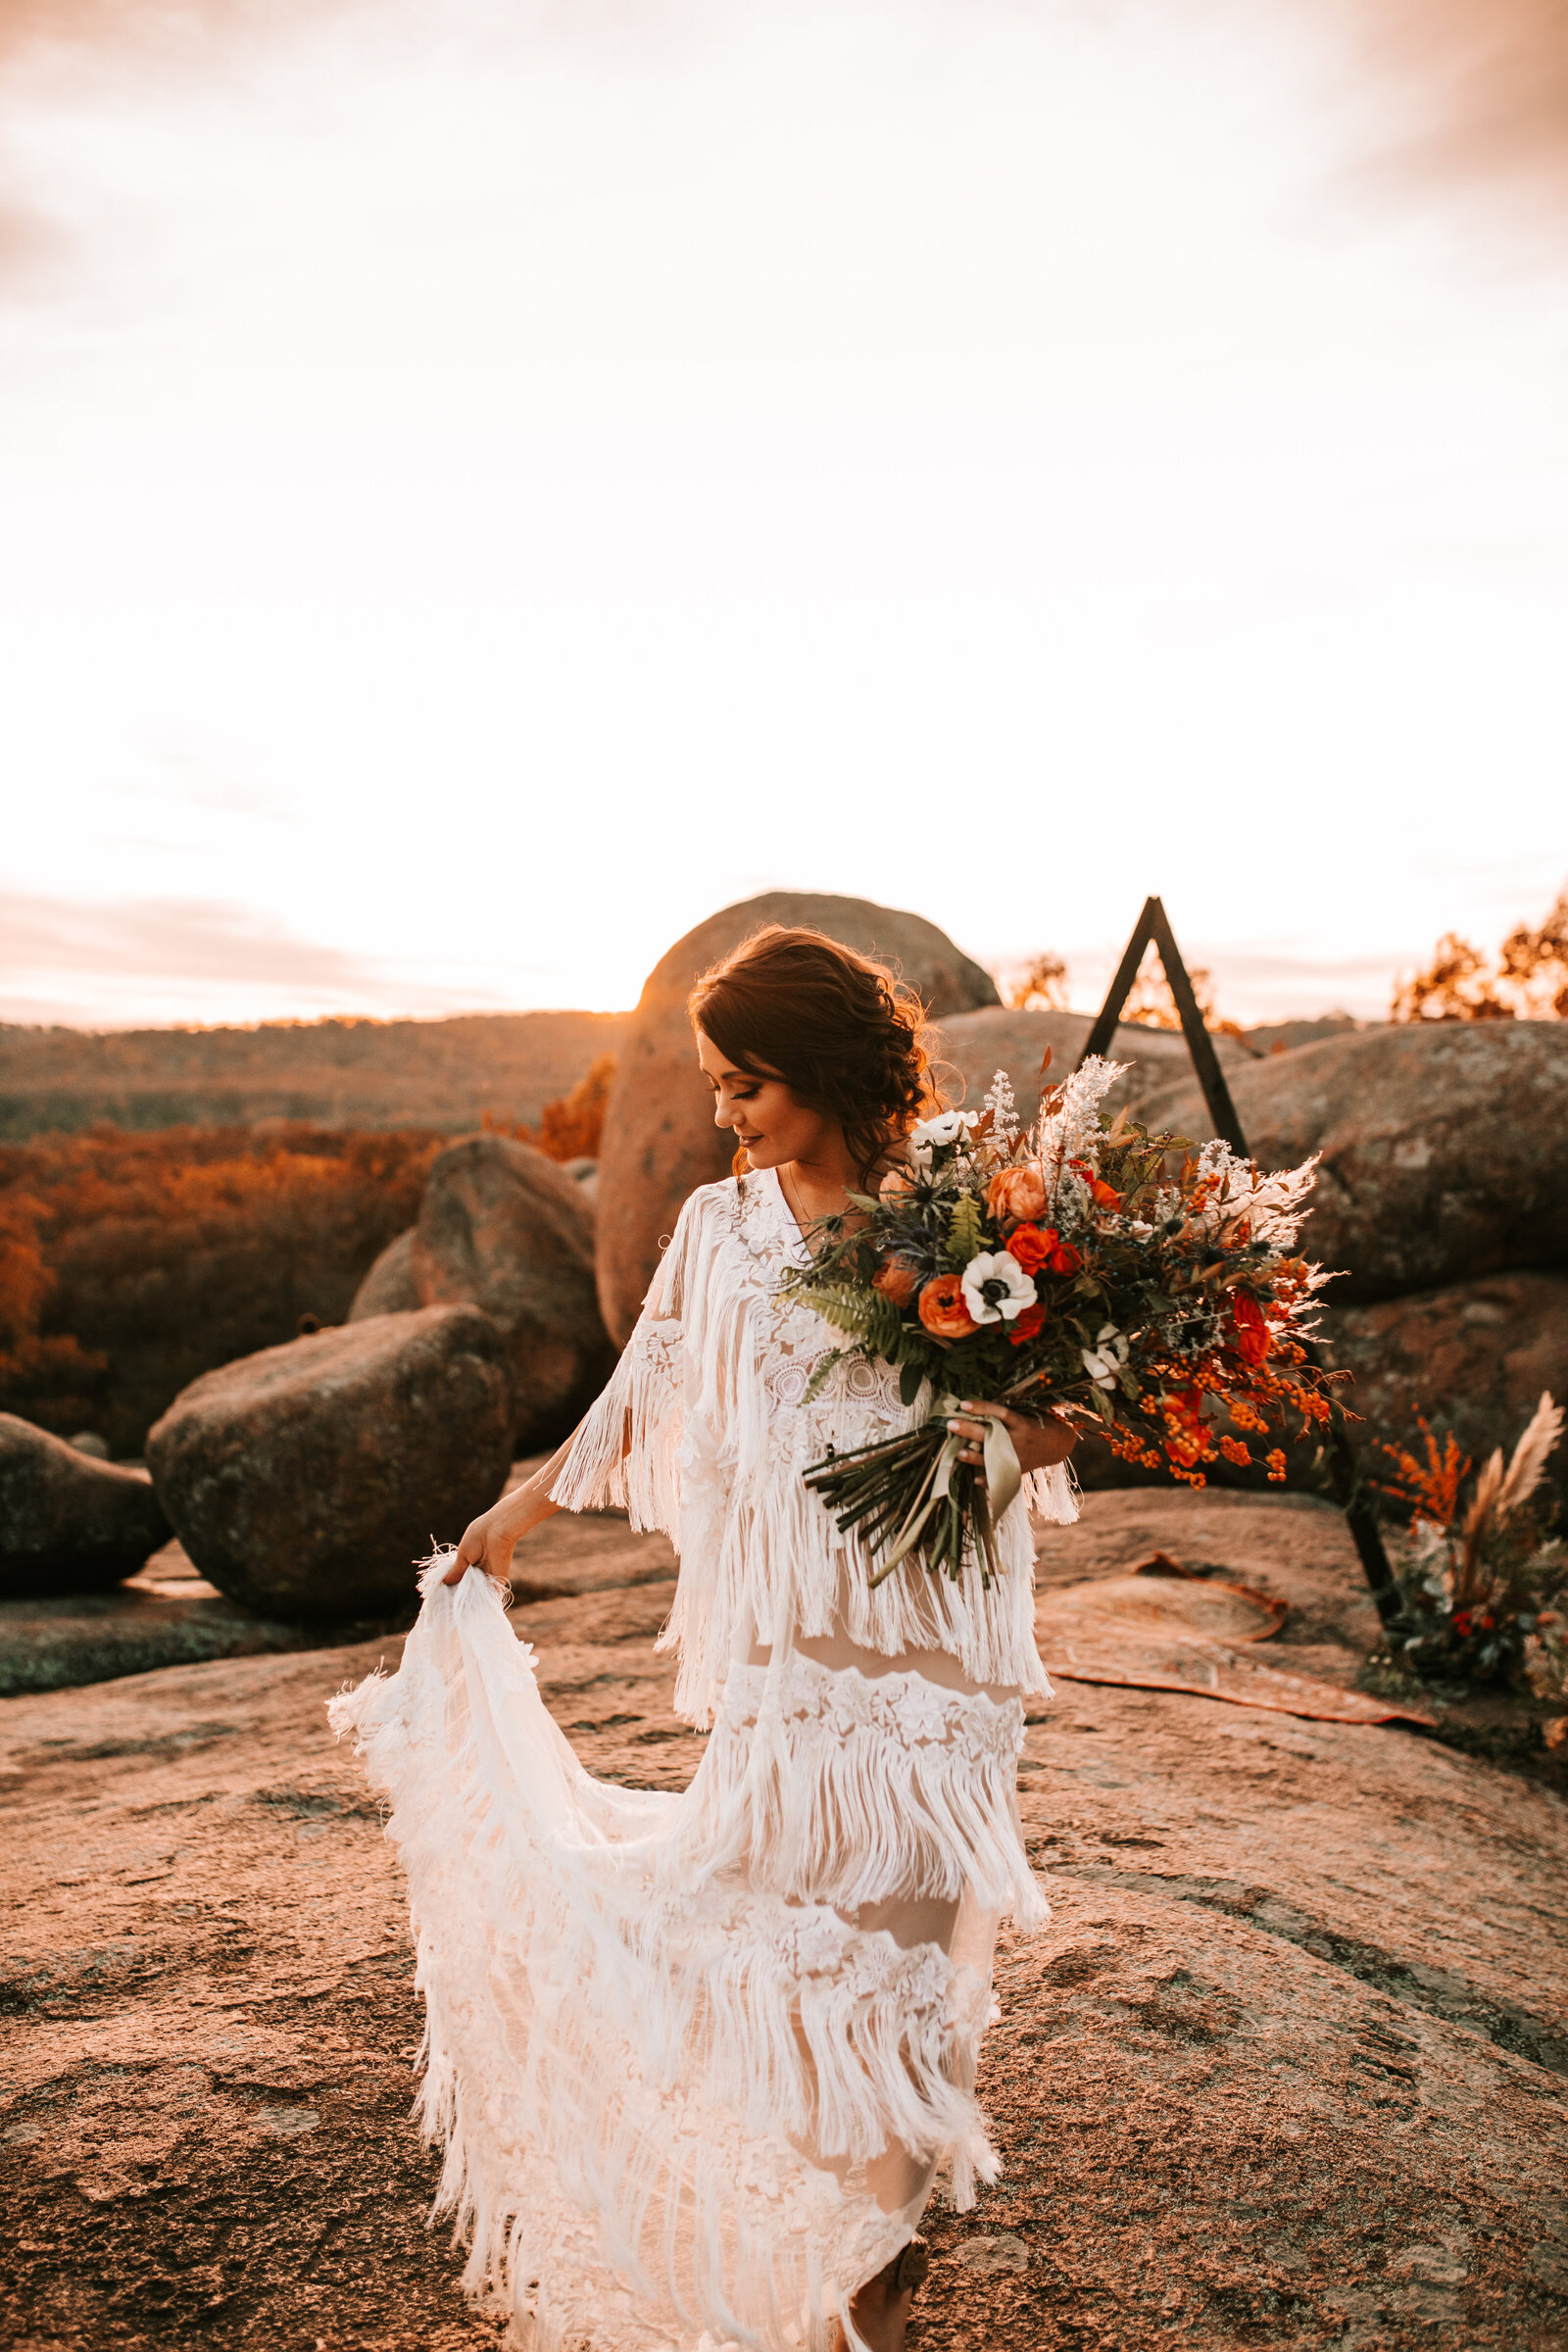 boho elopement with wife in a boho vibe dress on large rocks